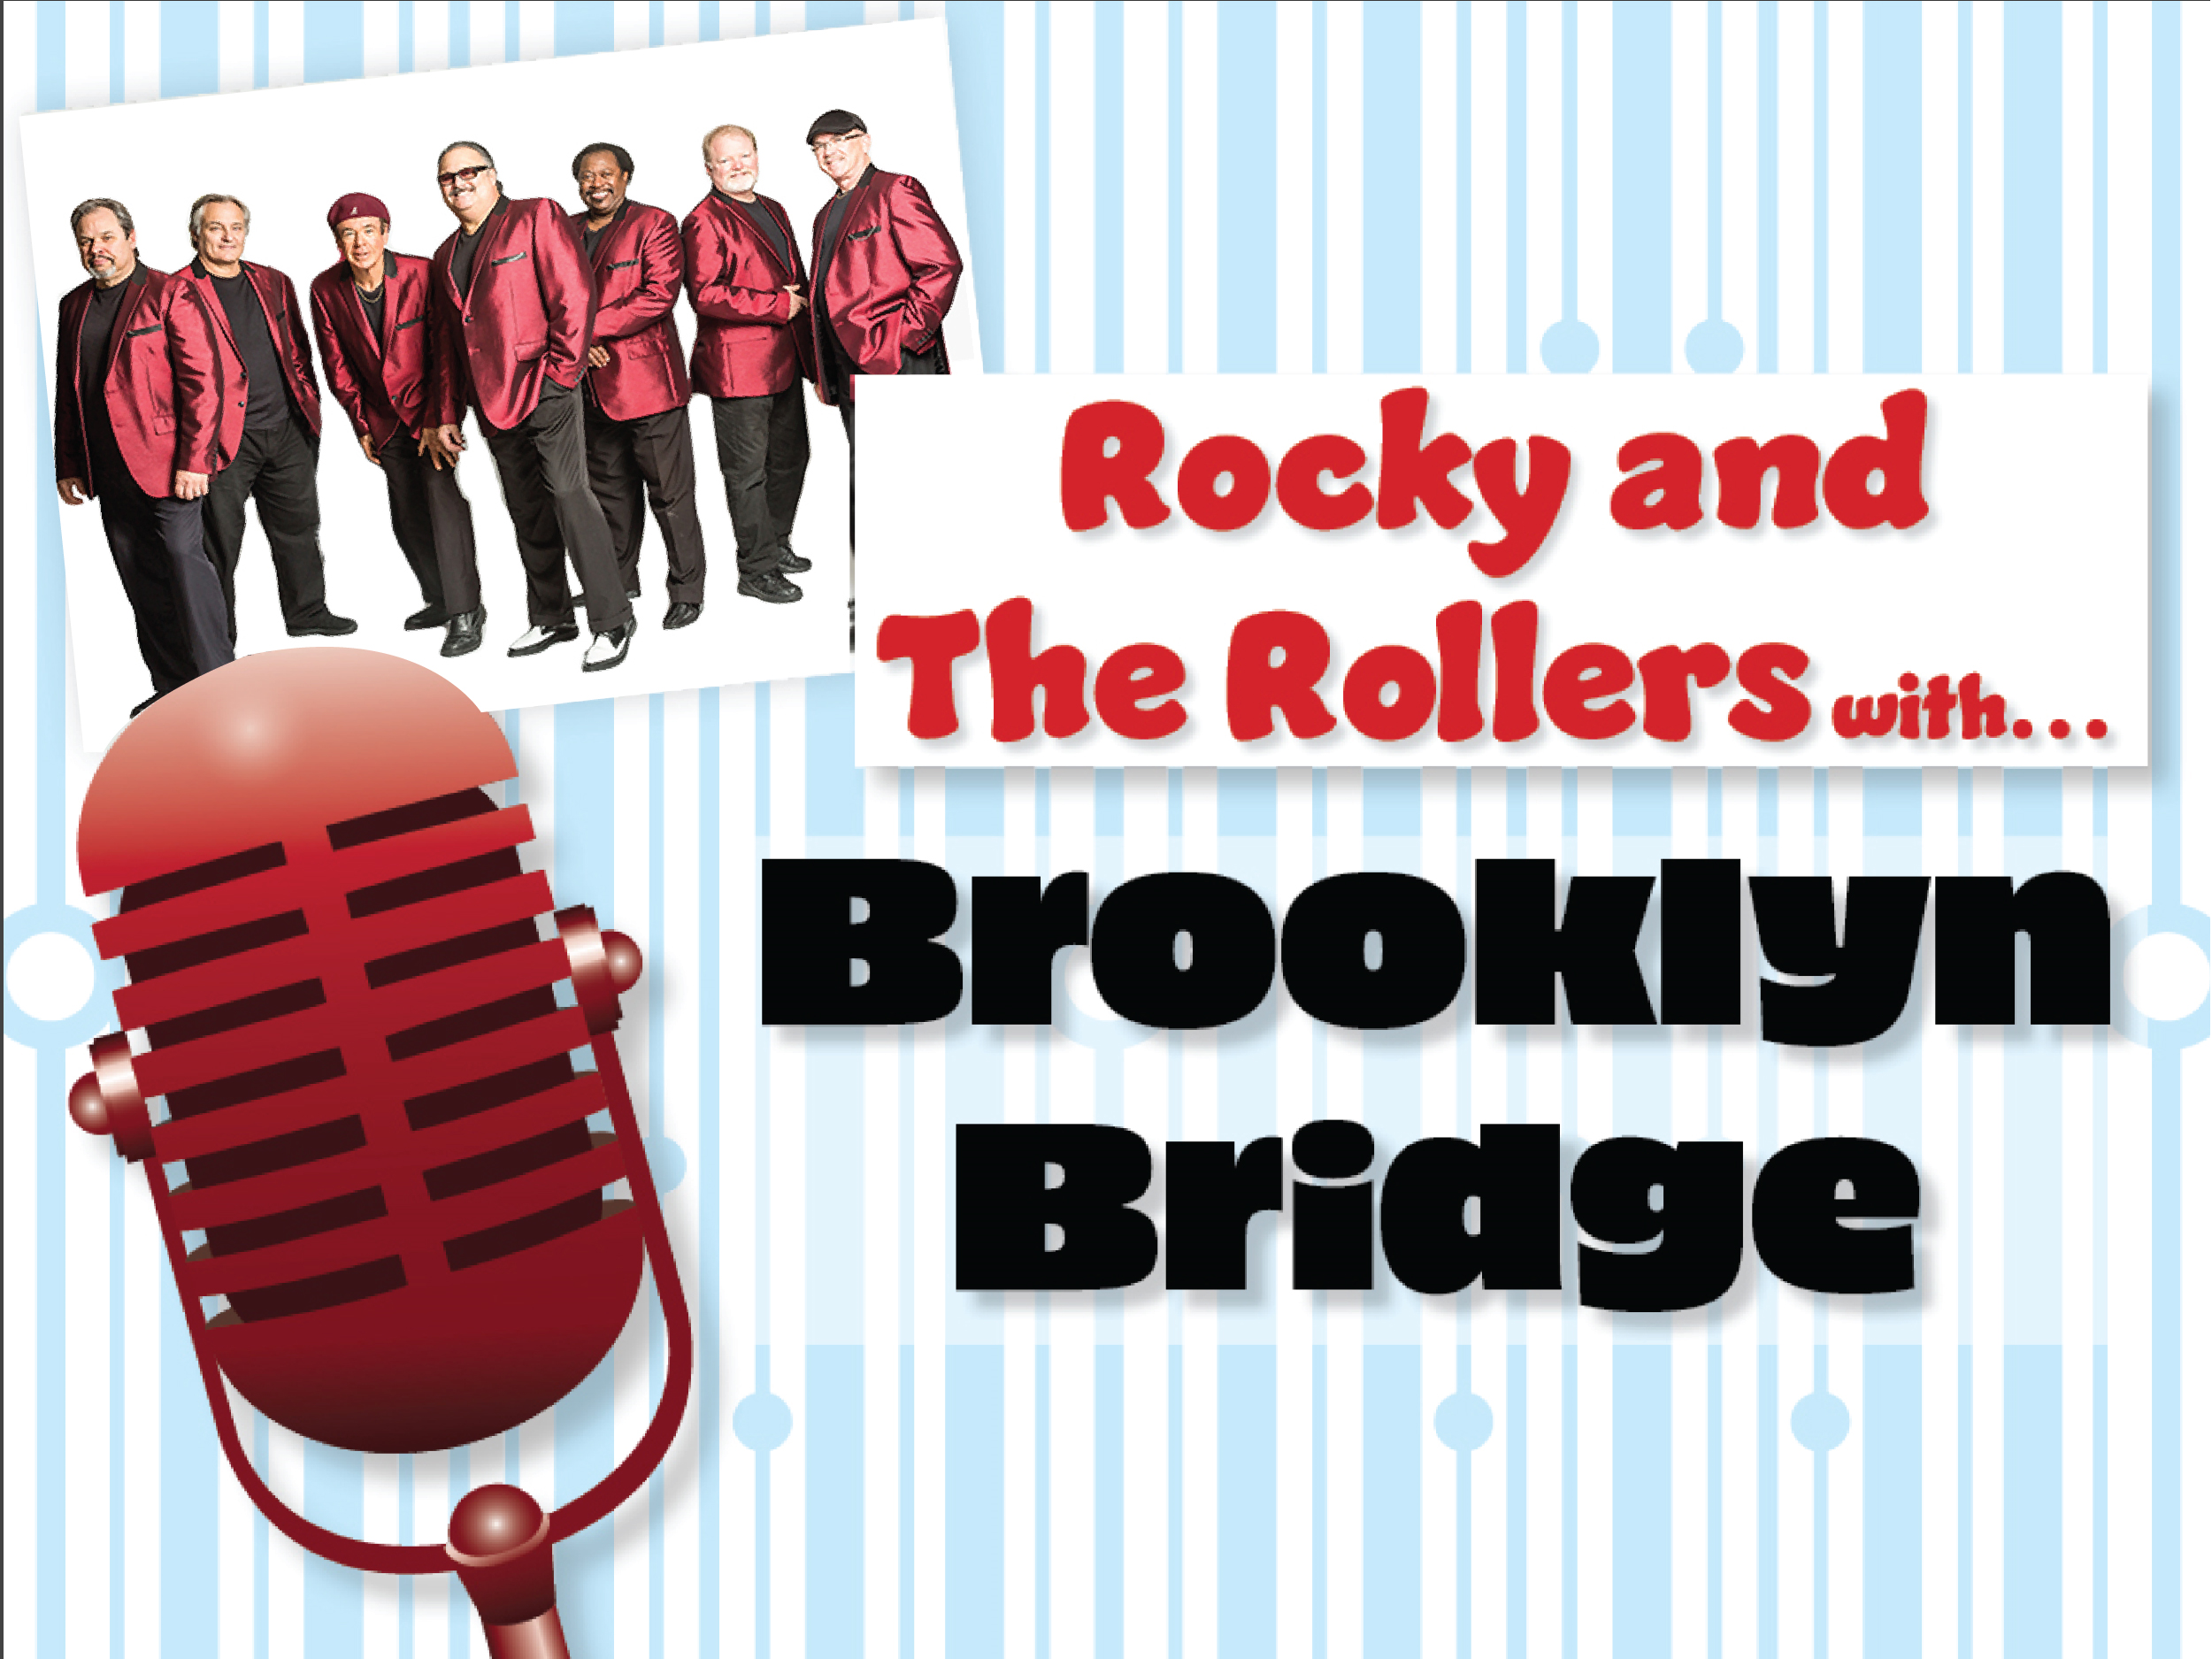 doo wop n rock series: the brooklyn bridge Image